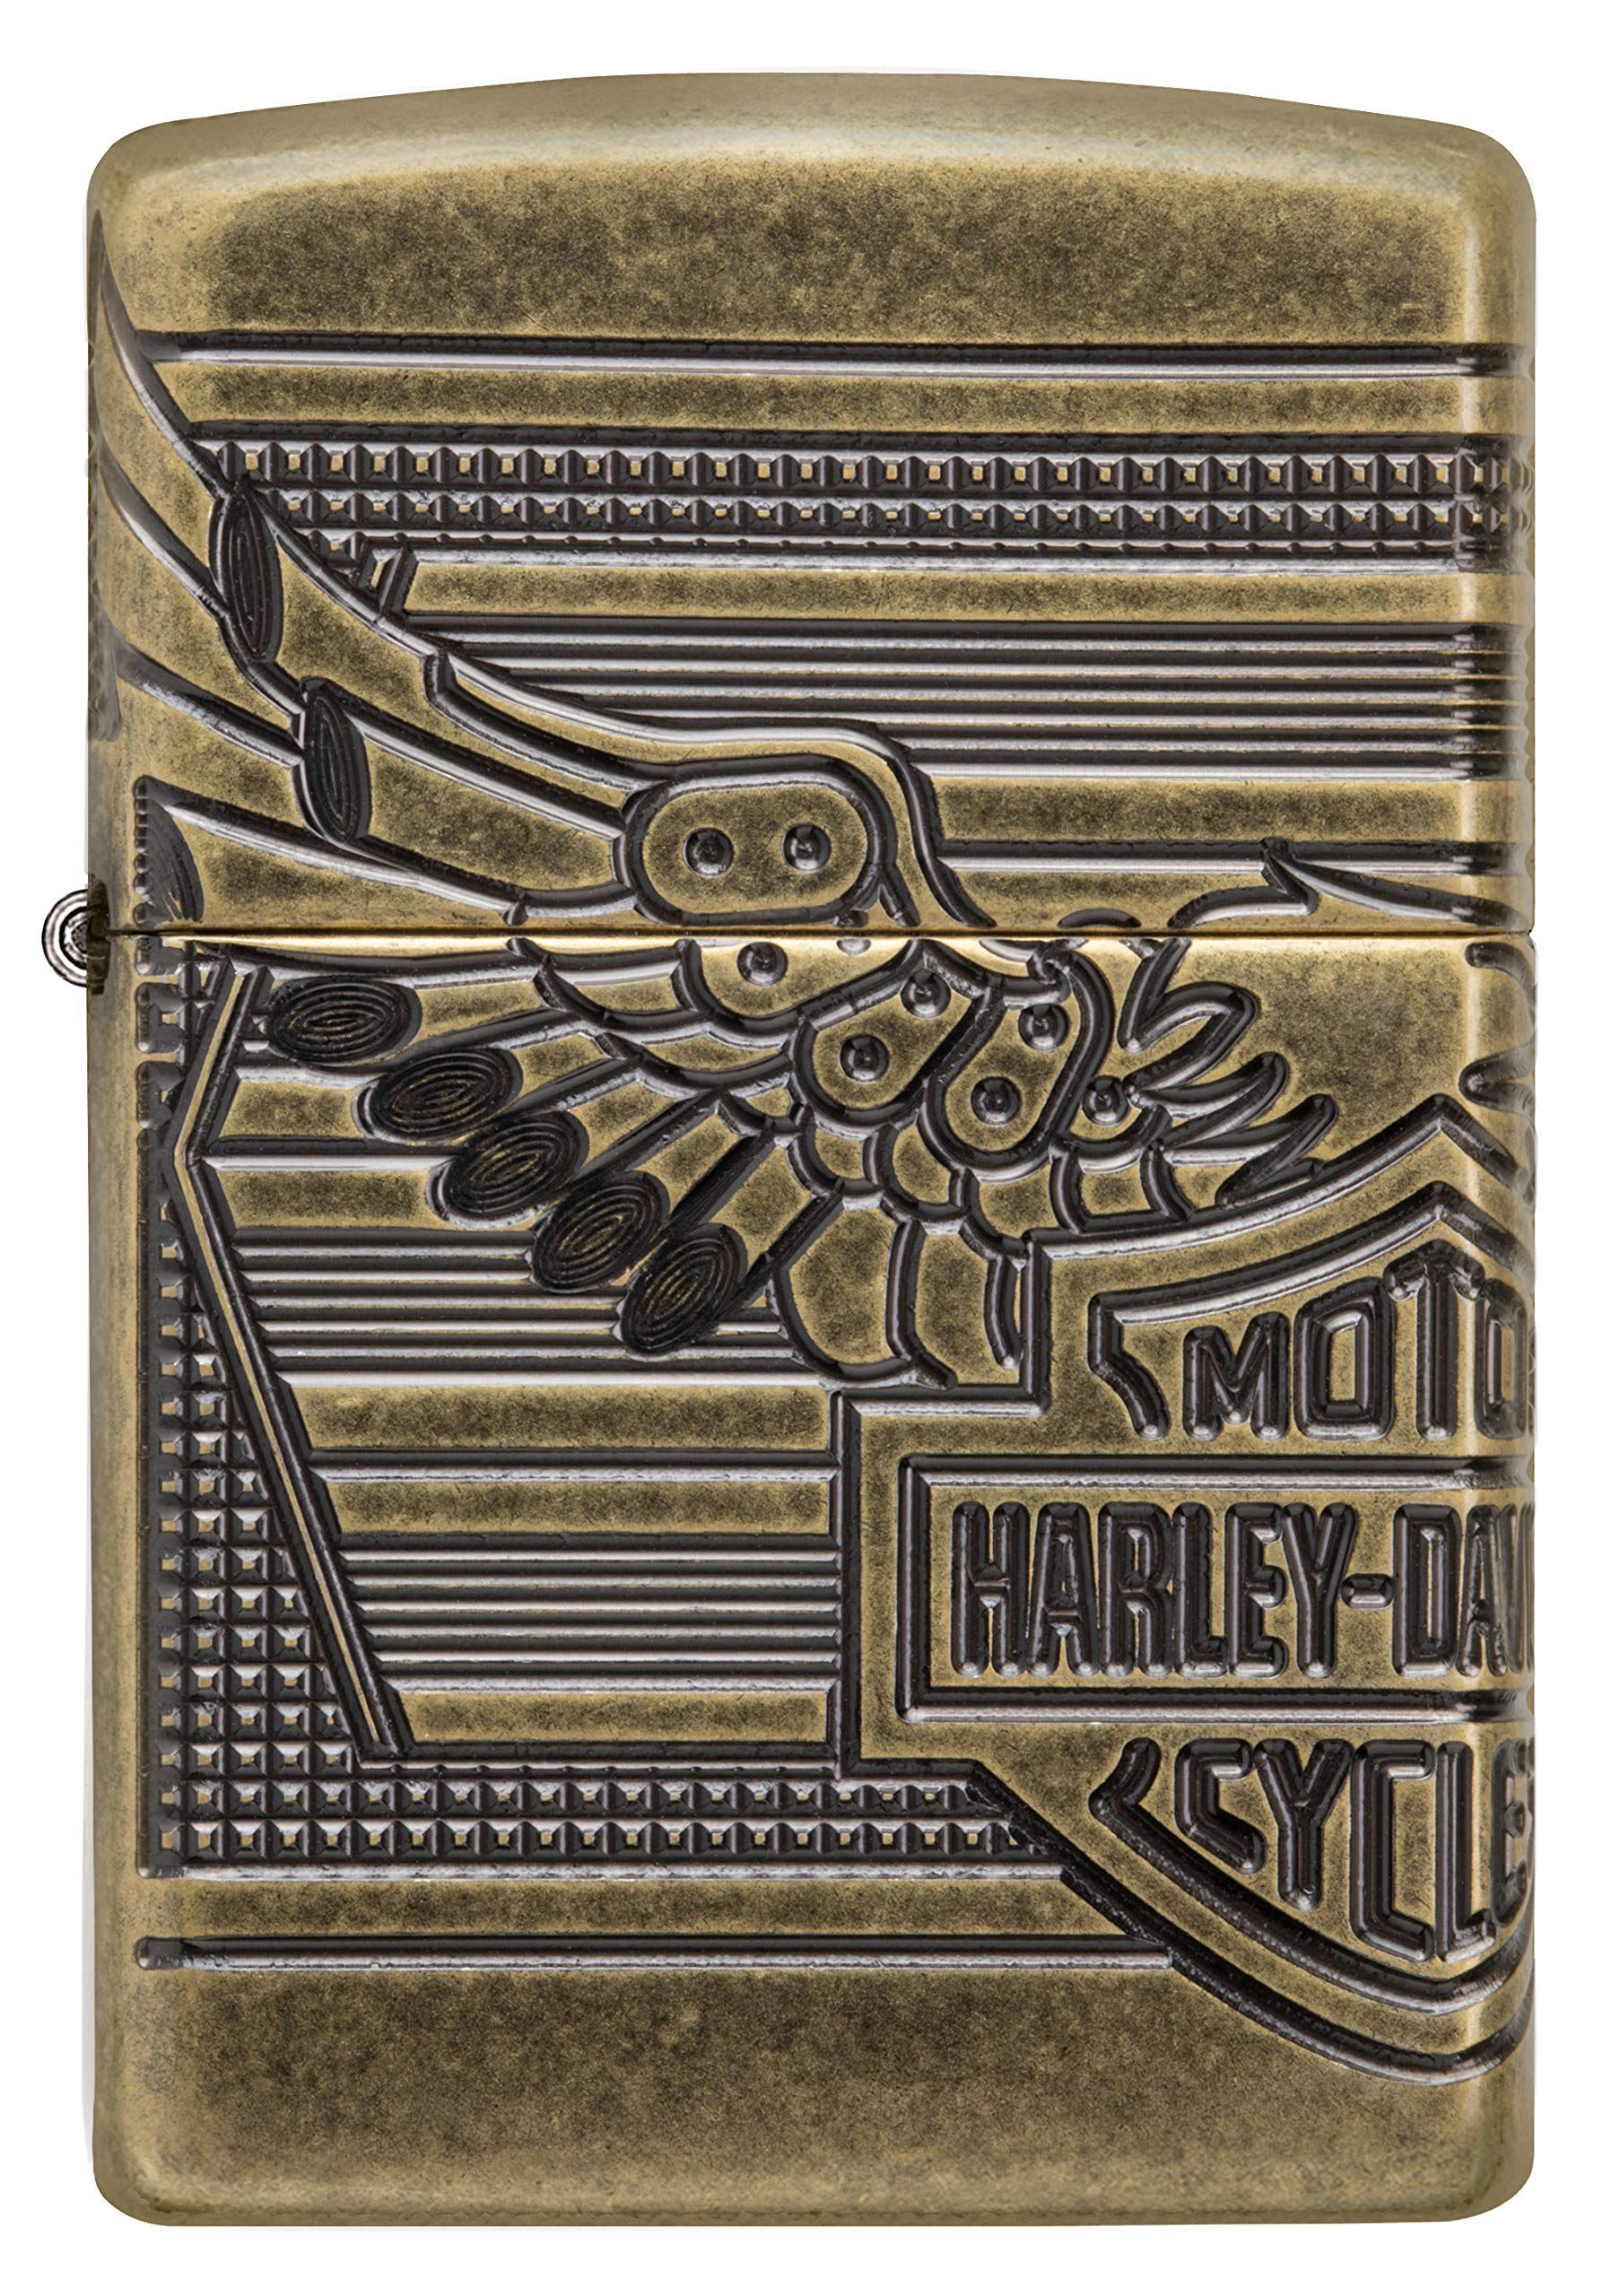 Zippo Harley-Davidson 2019 Collectible Pocket Lighter by Zippo (Image #2)